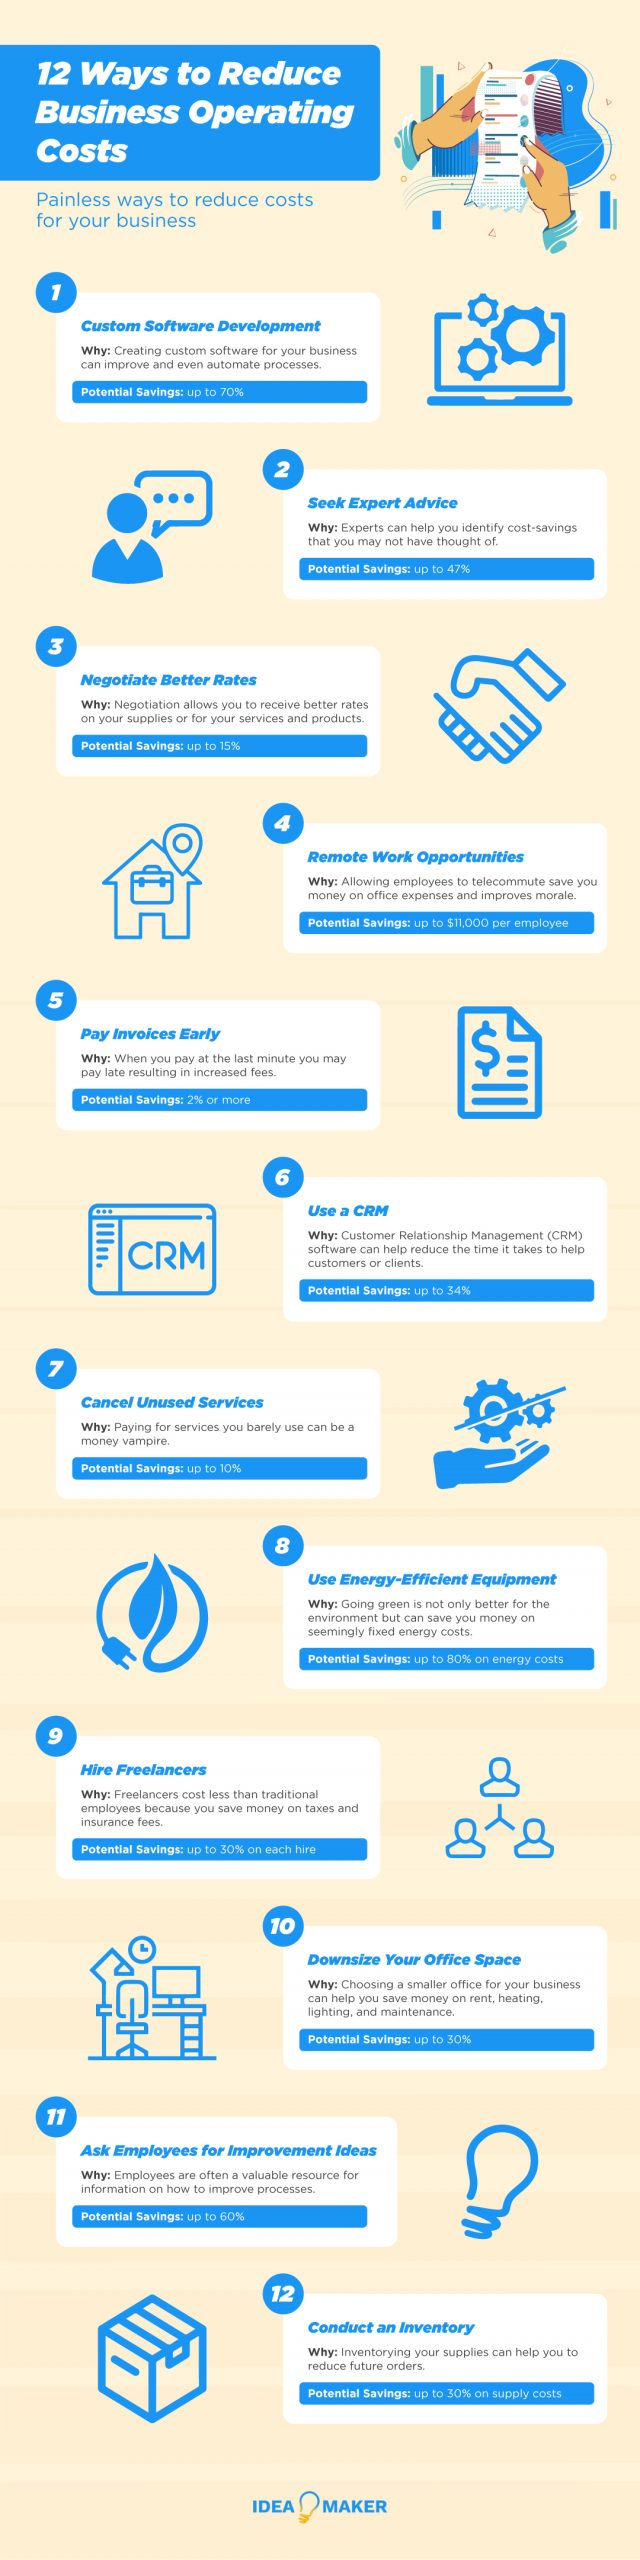 Reduce Operating Costs Infographic